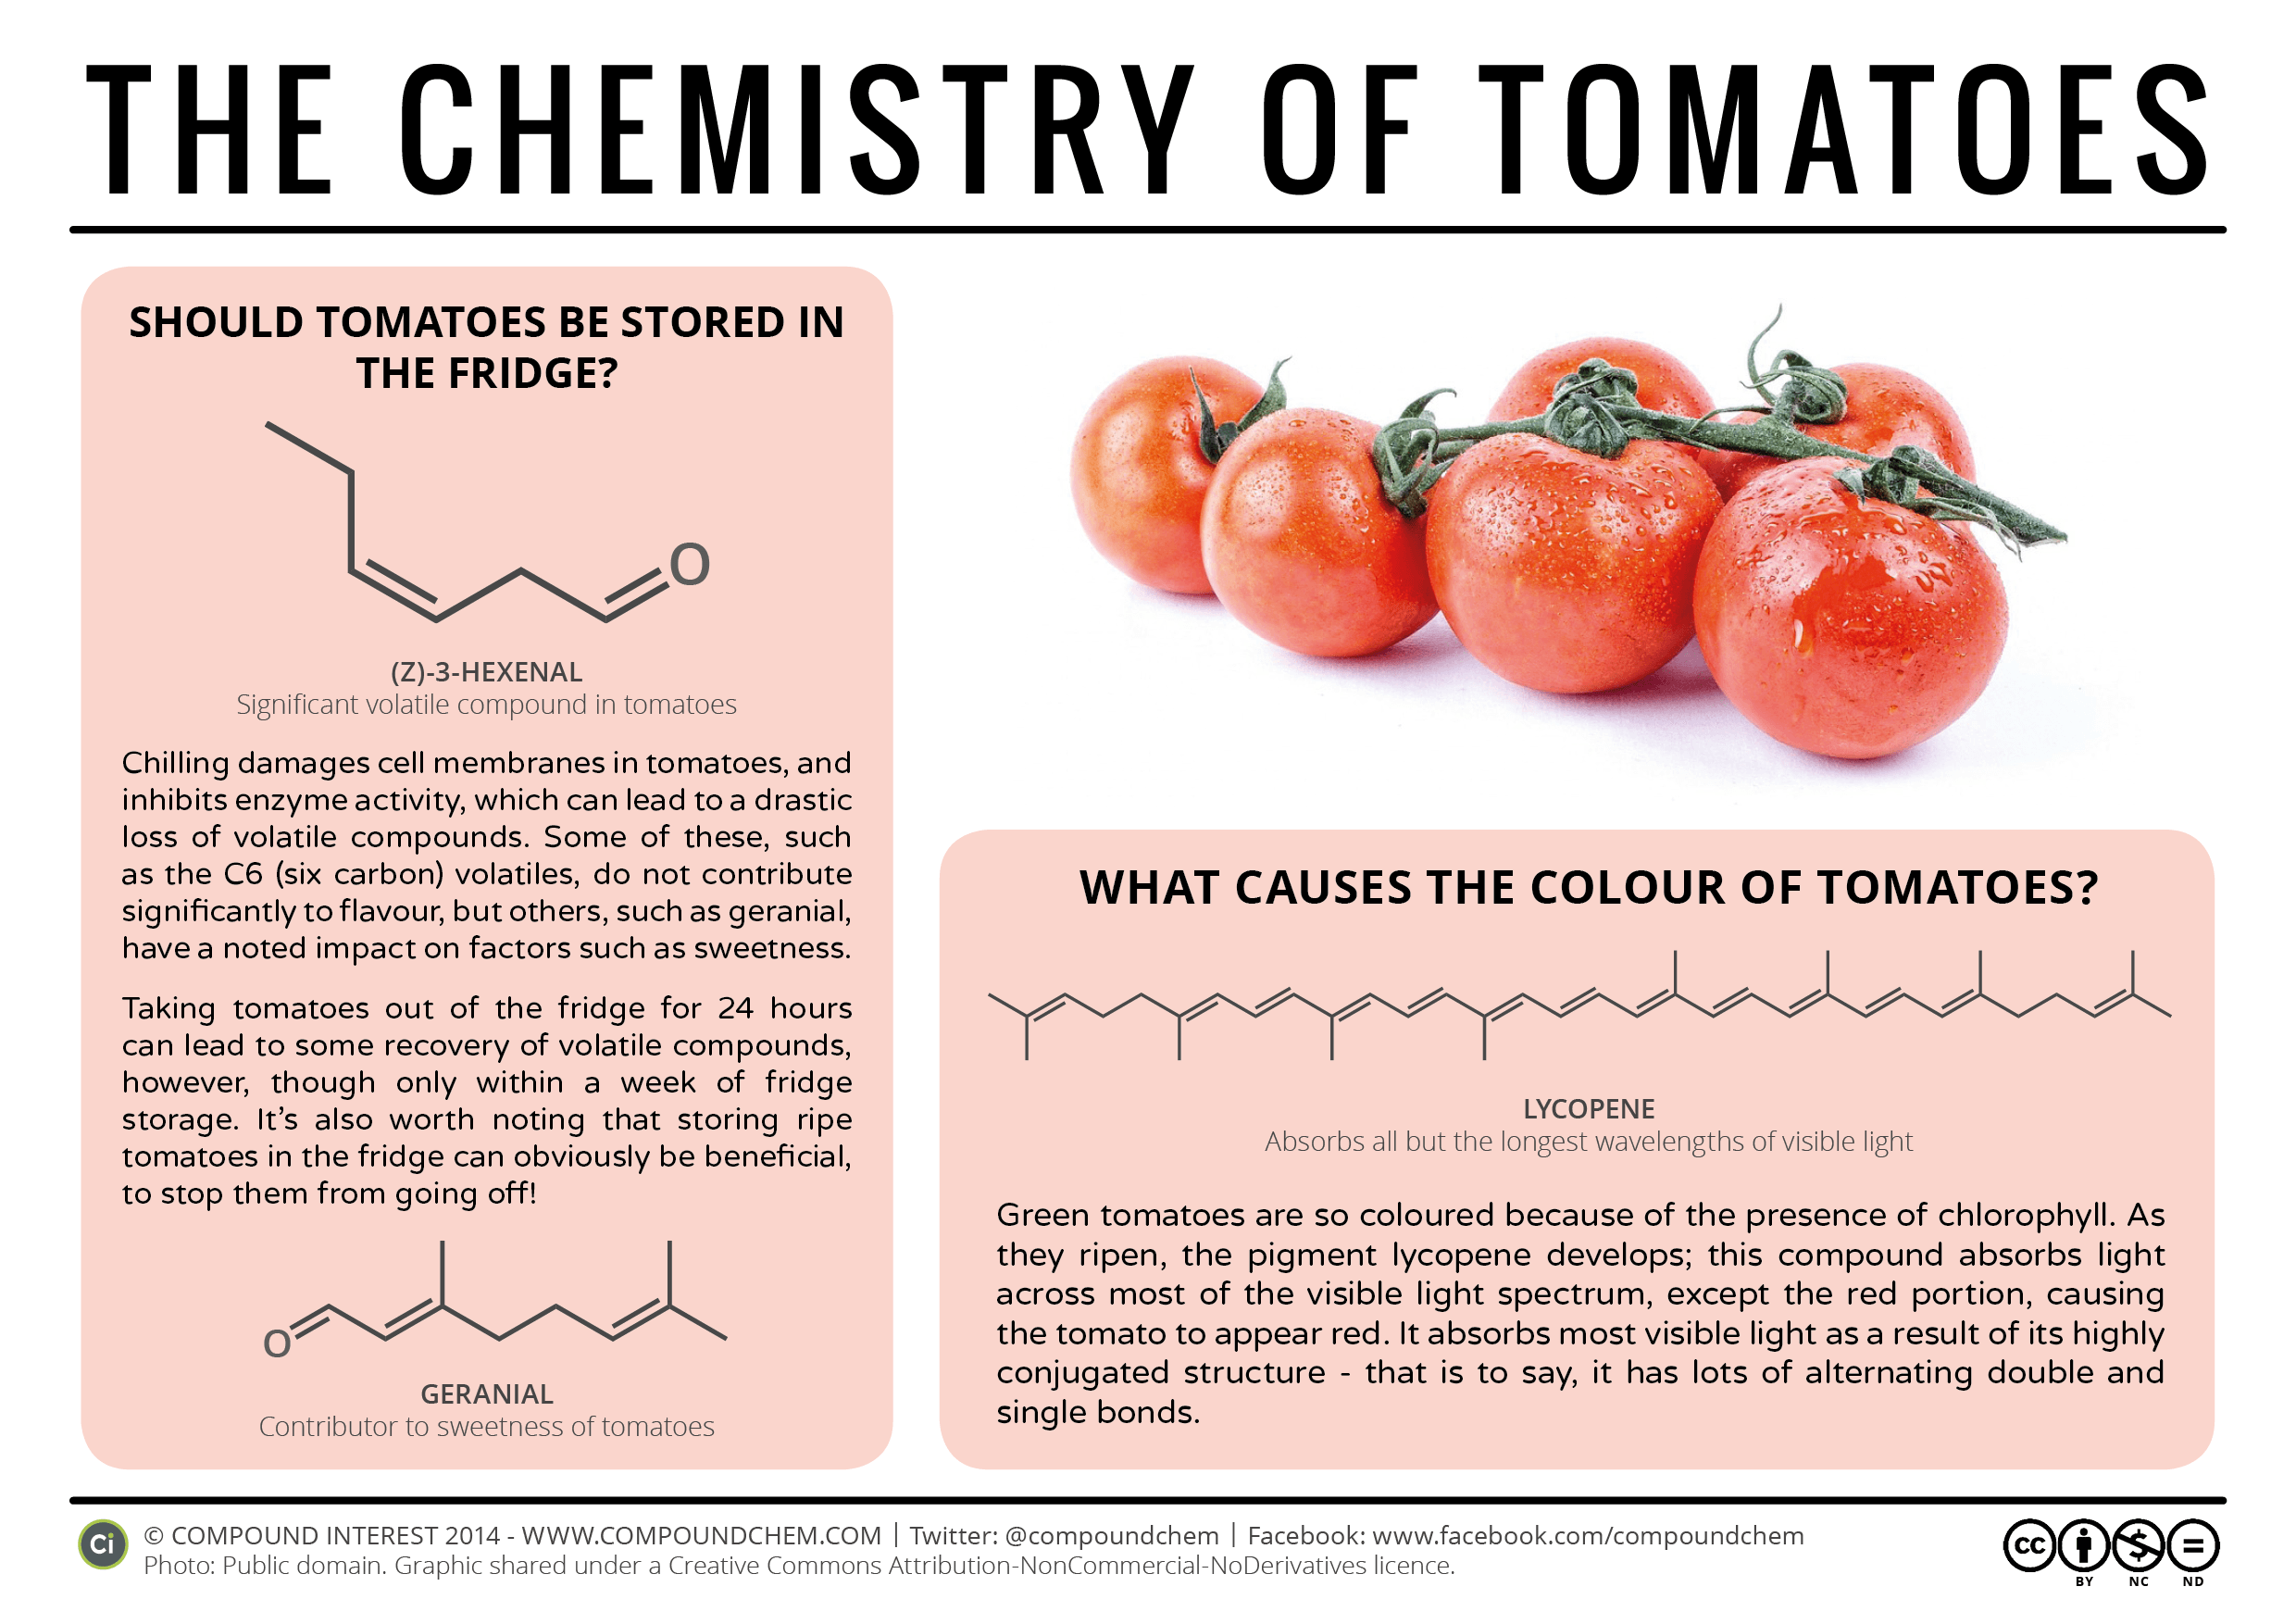 Chemical Compounds In Food We Eat